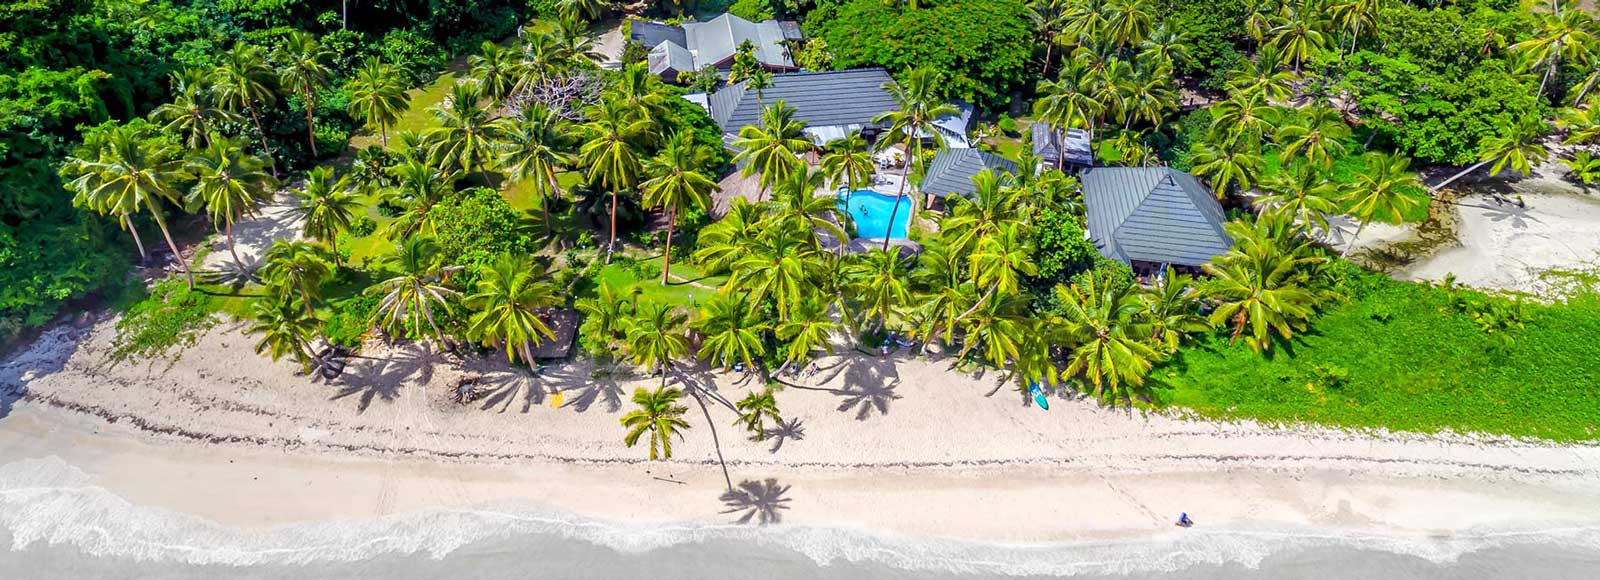 10 Best Accommodation on the Coral Coast for Foodies